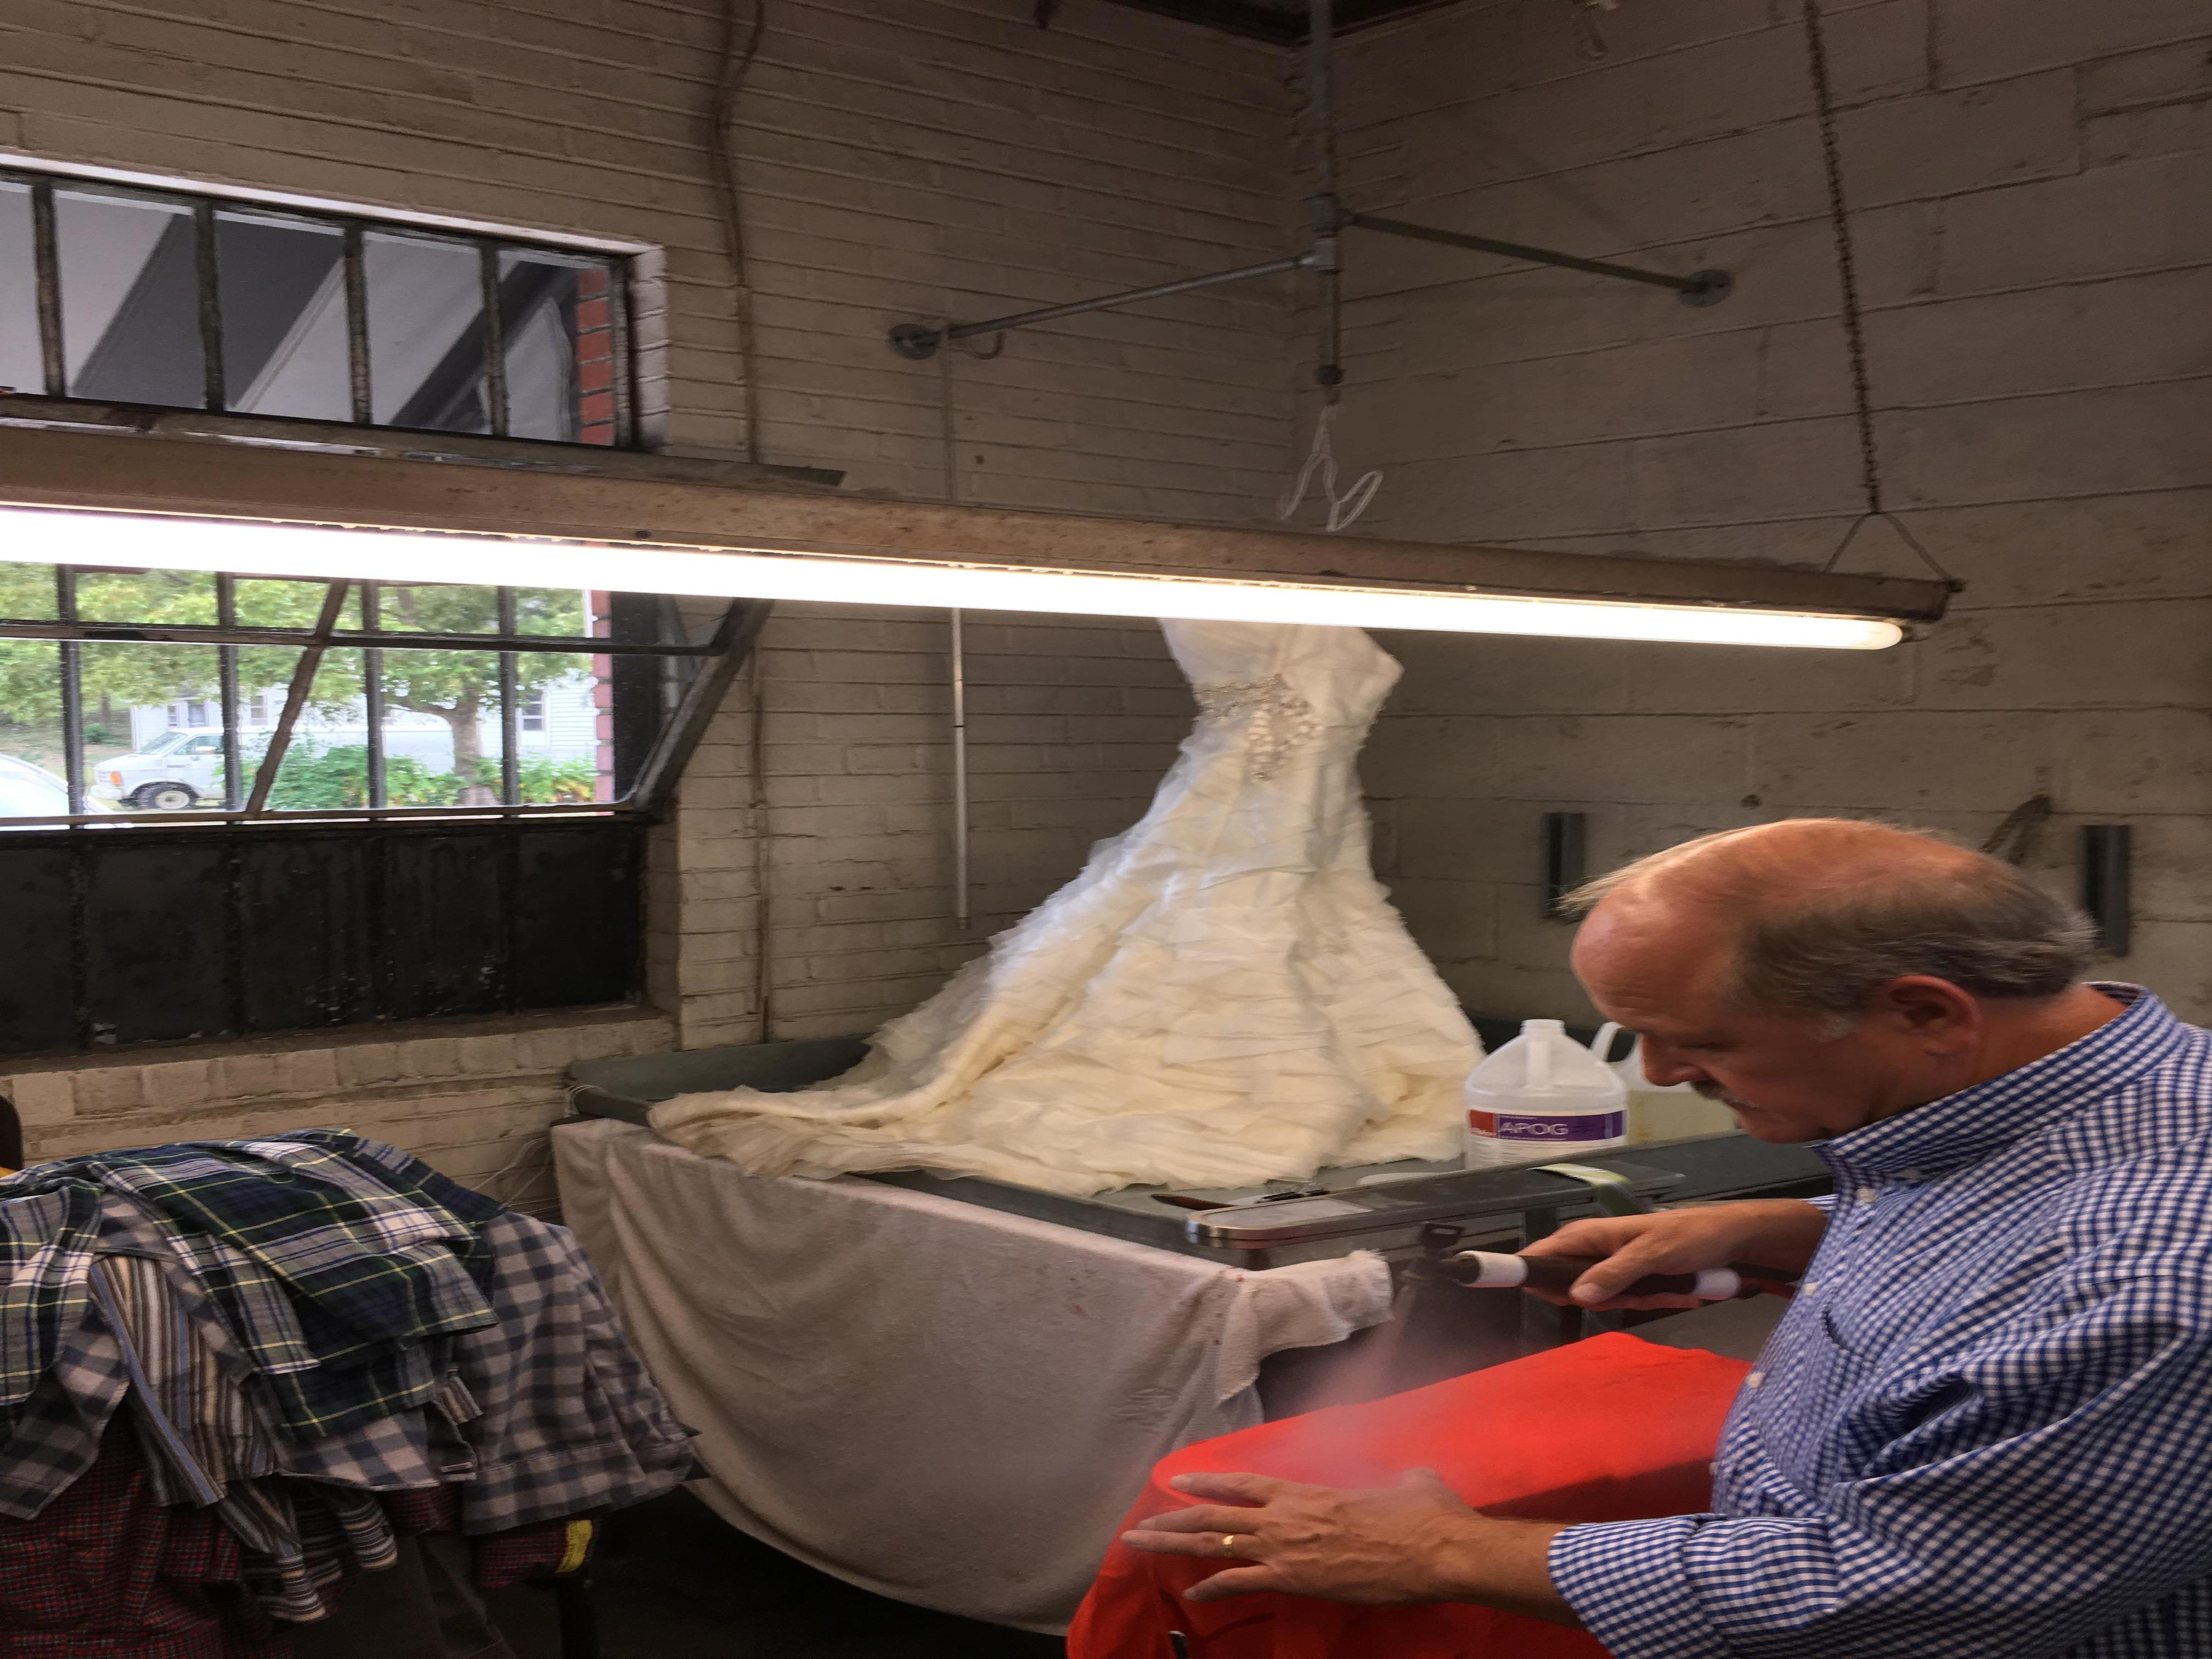 Vogue cleaners birmingham alabama al for Wedding dress dry cleaning near me